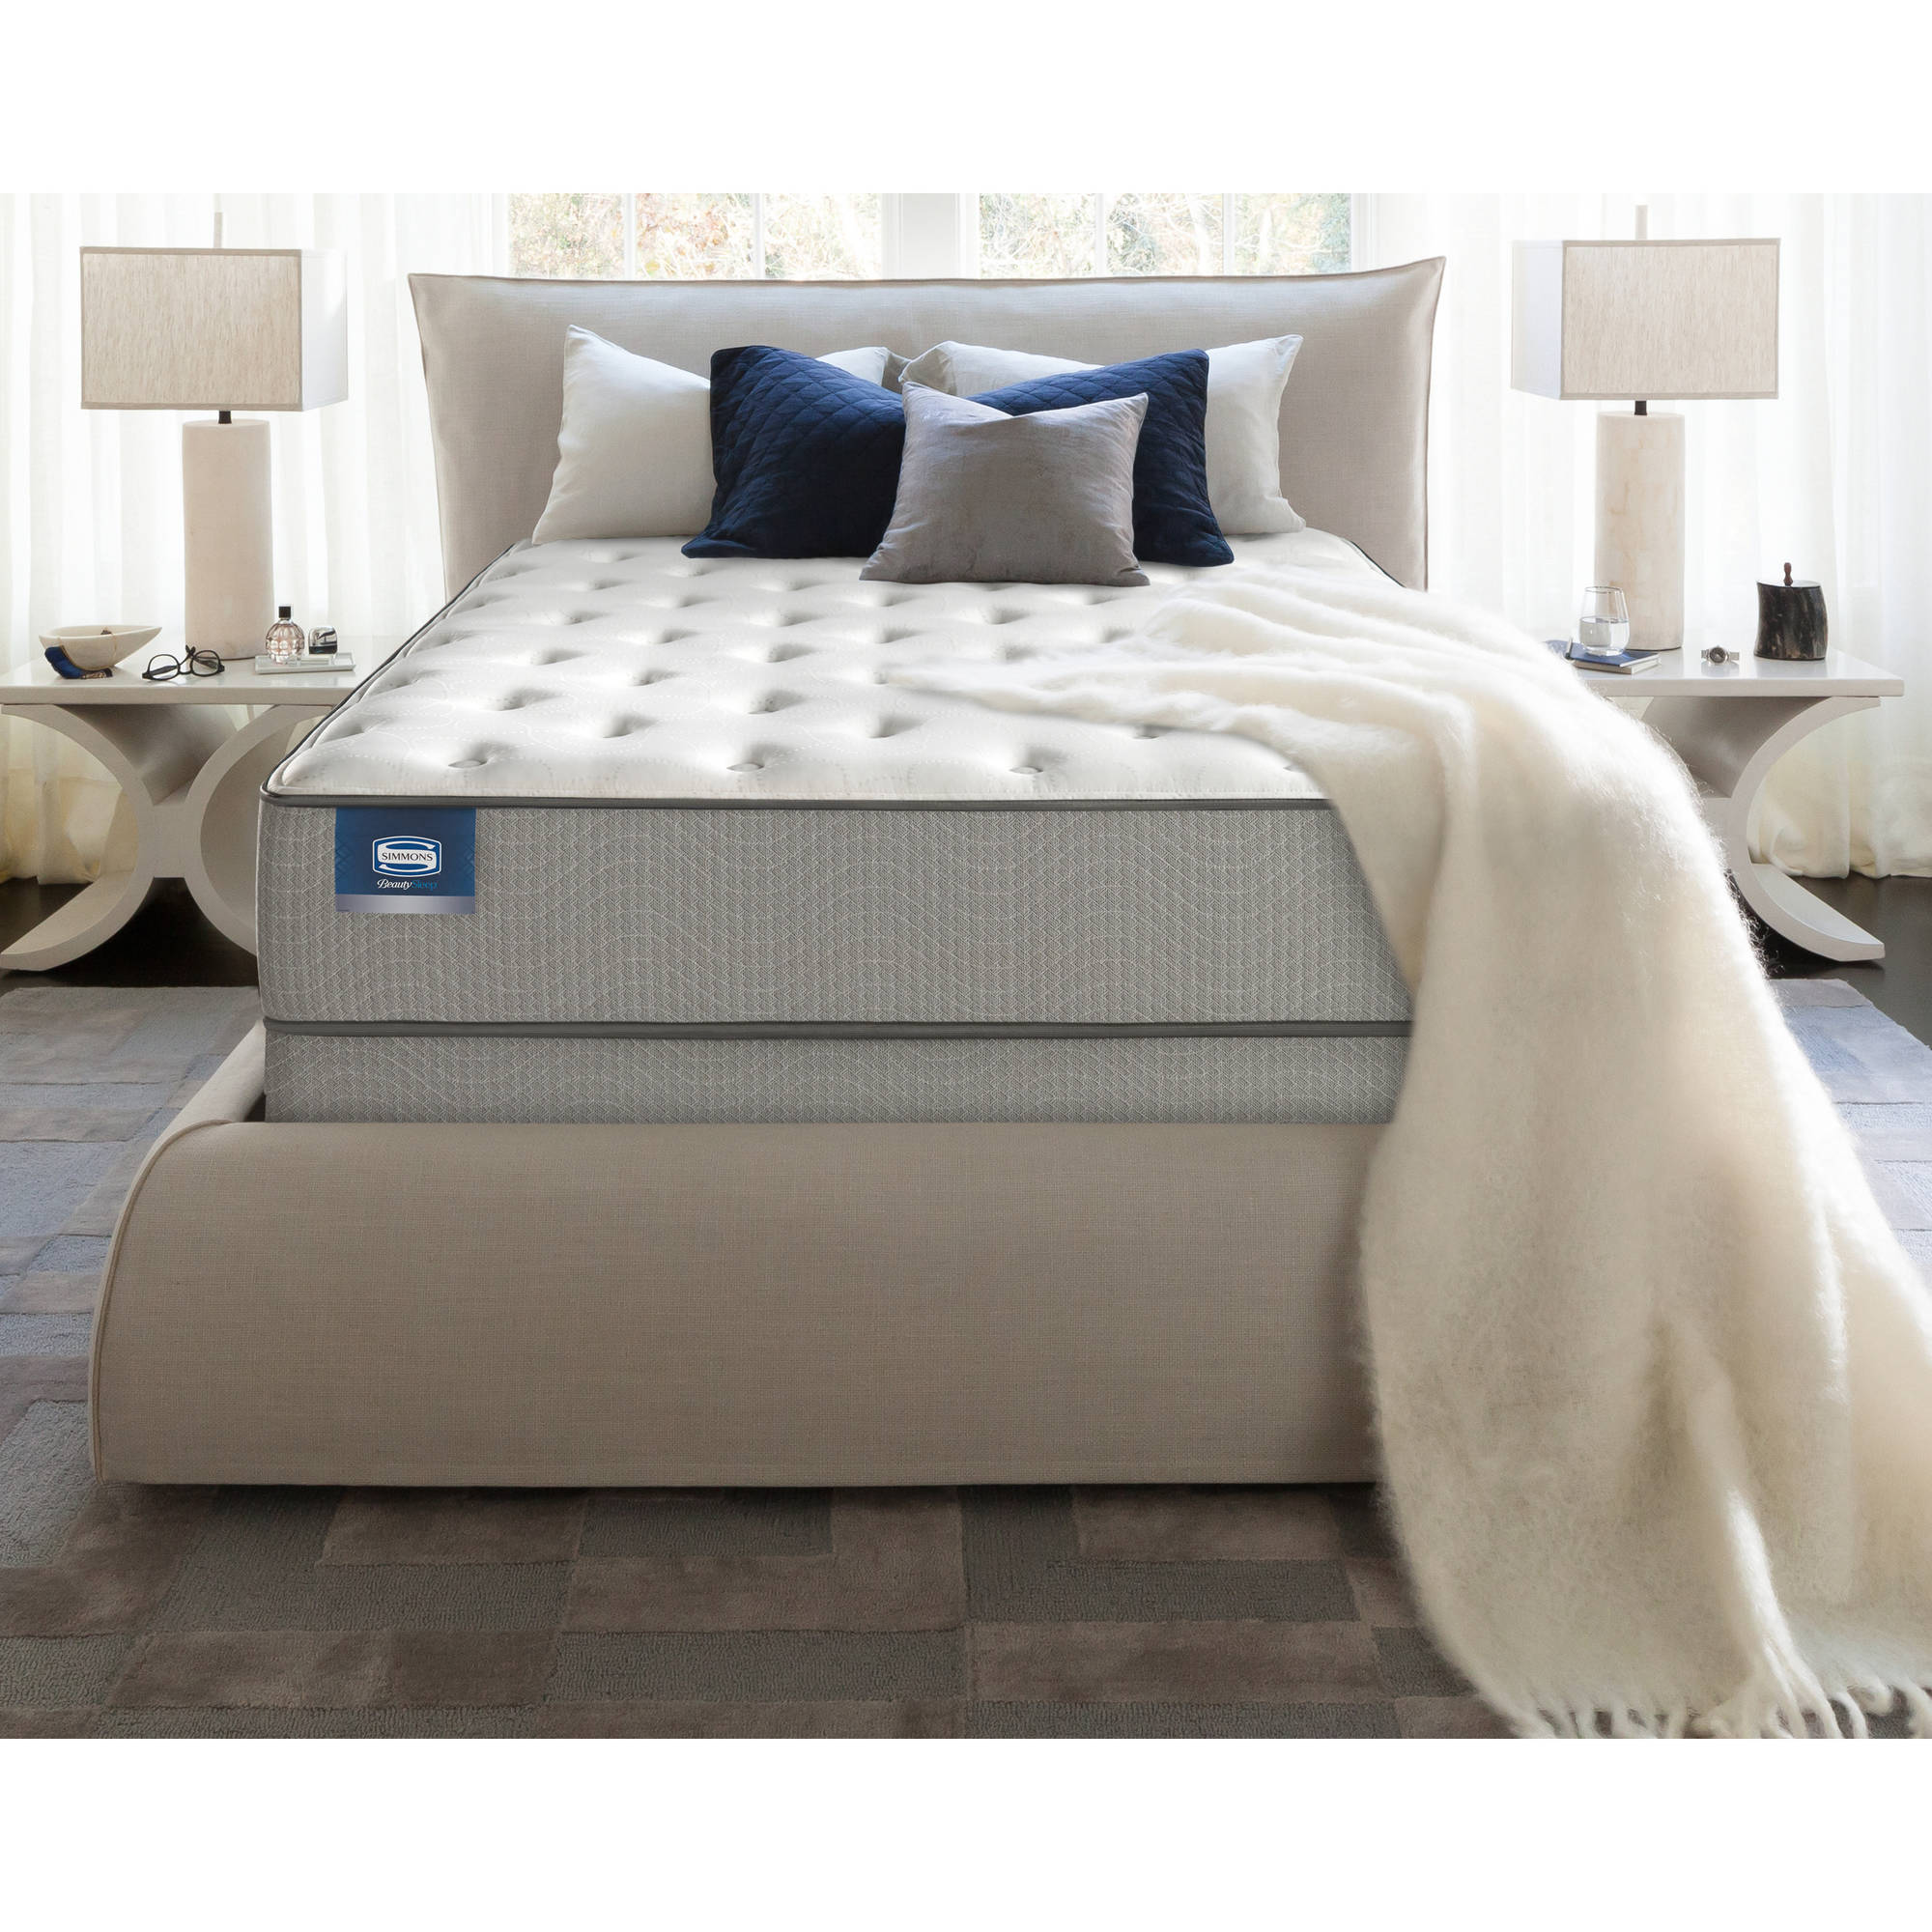 "BeautySleep Apricot 14"" Plush Mattress, Multiple Sizes"